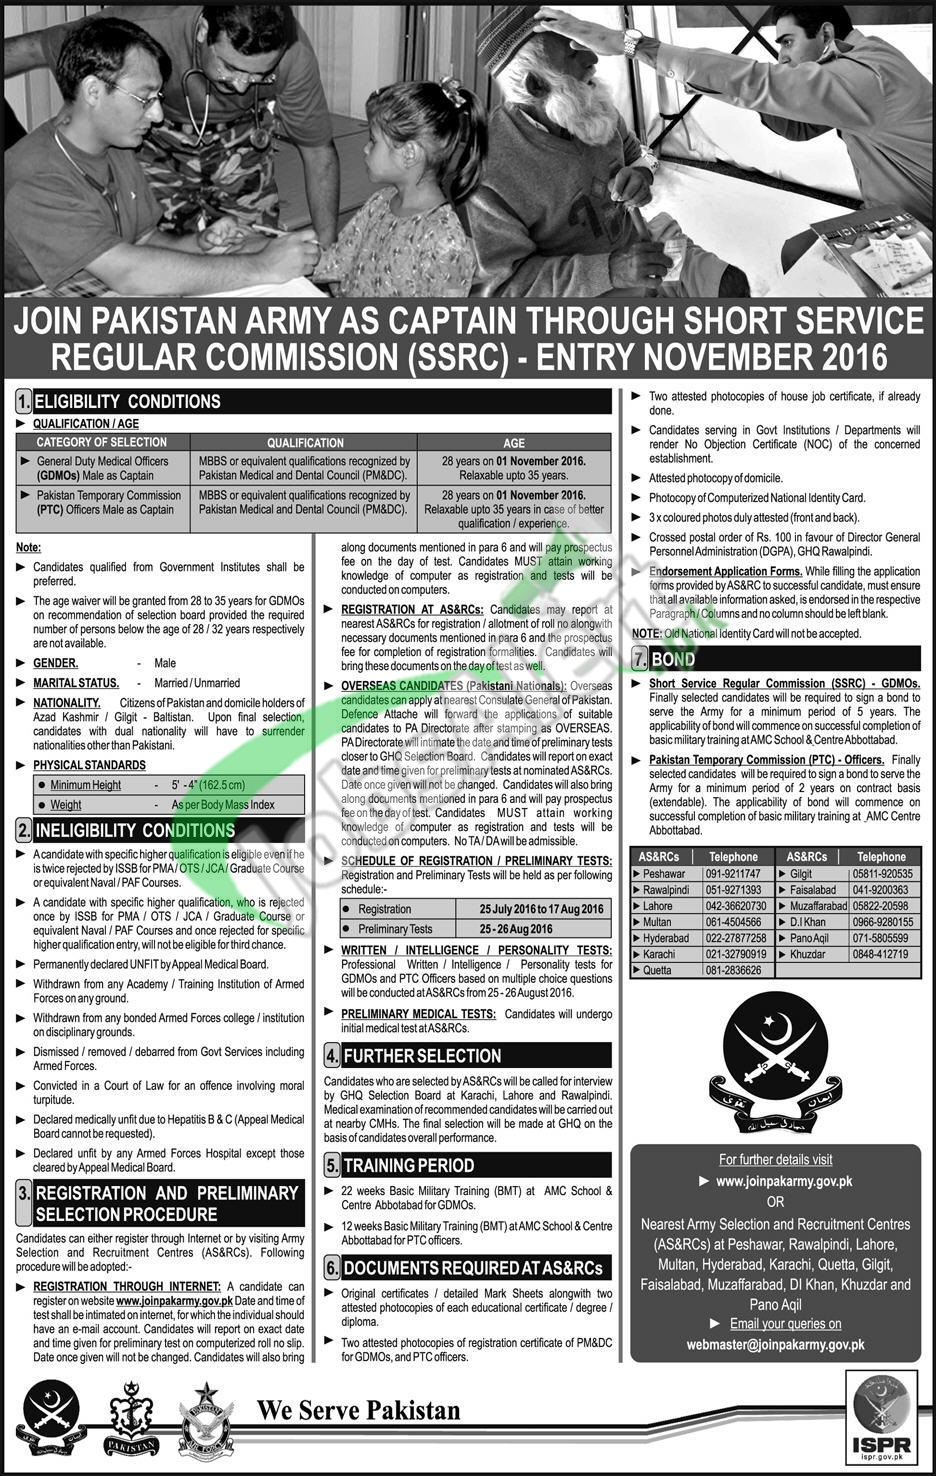 Join Pak Army as Captain 2016